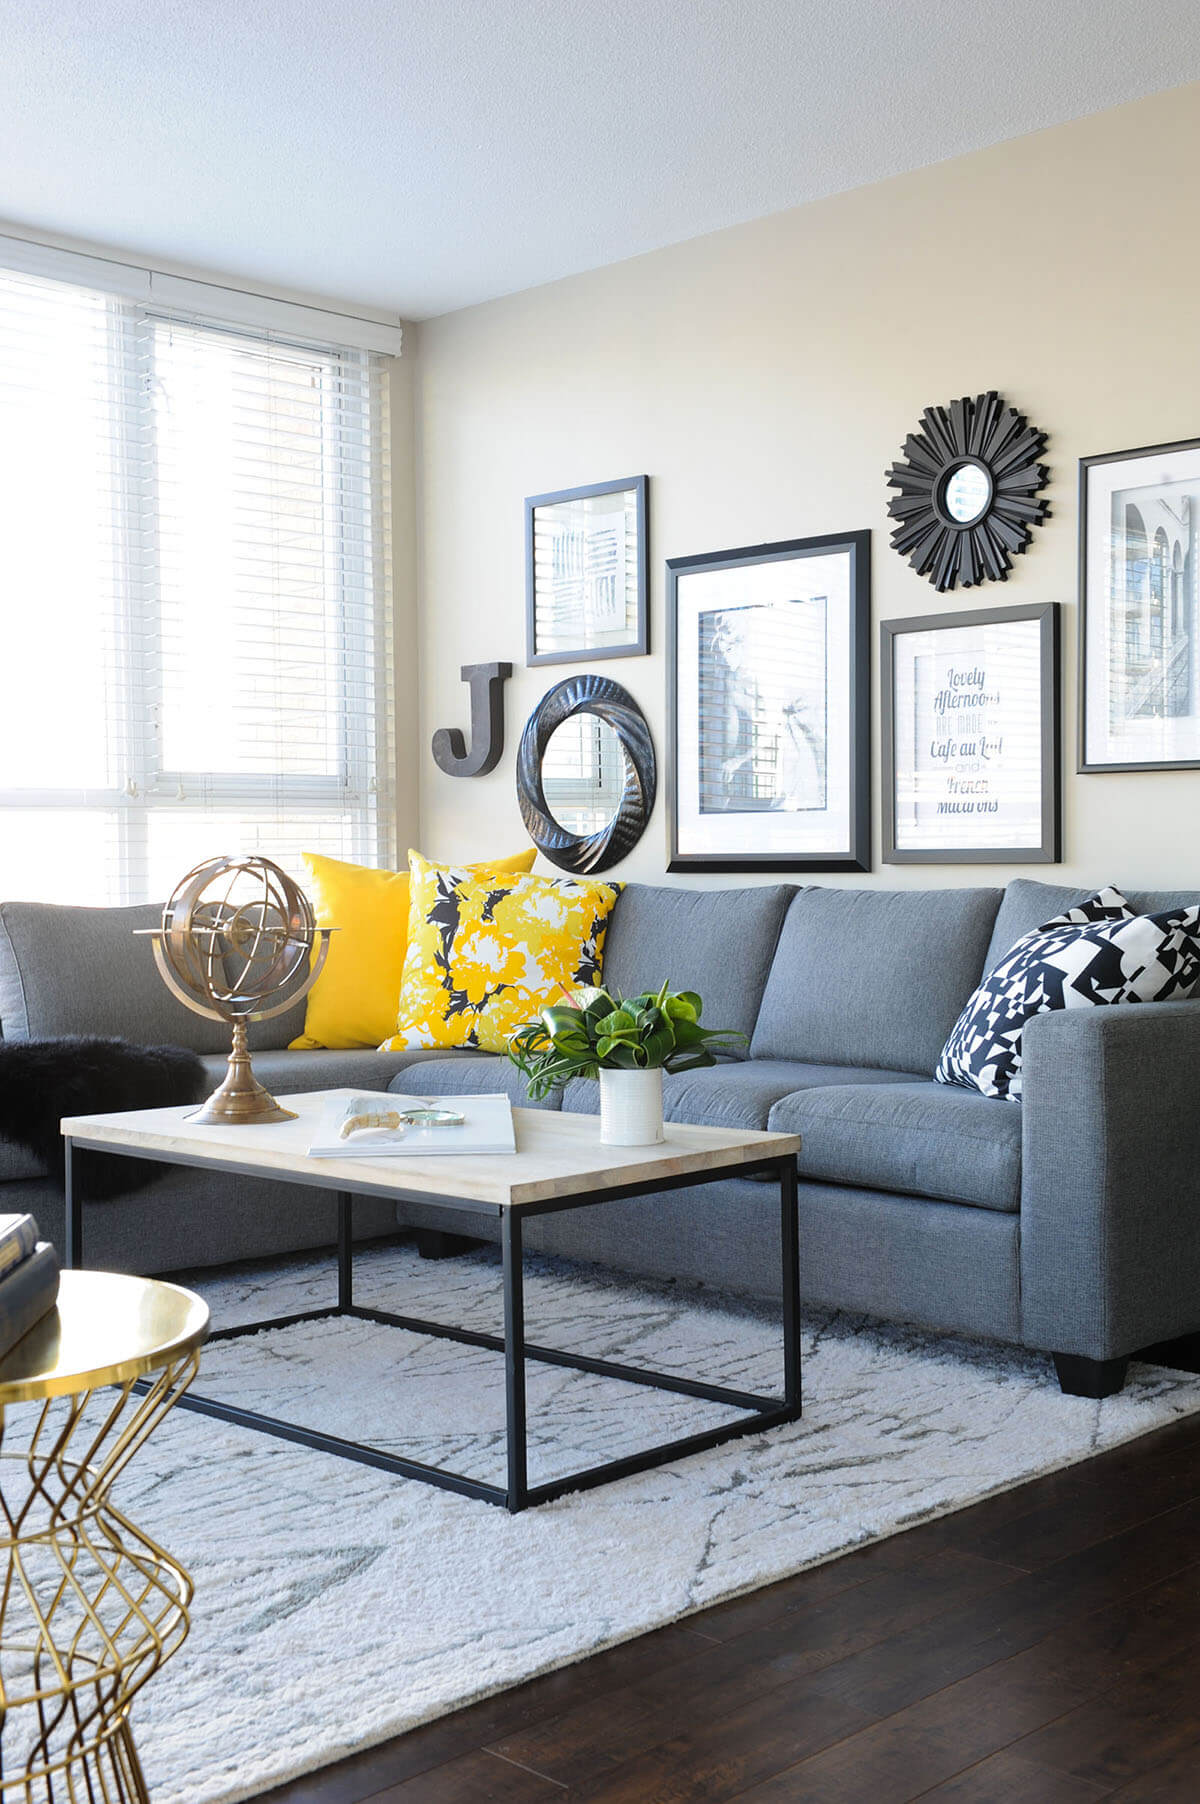 Small Living Rooms Decorating Hgtv: 25+ Best Small Living Room Decor And Design Ideas For 2020